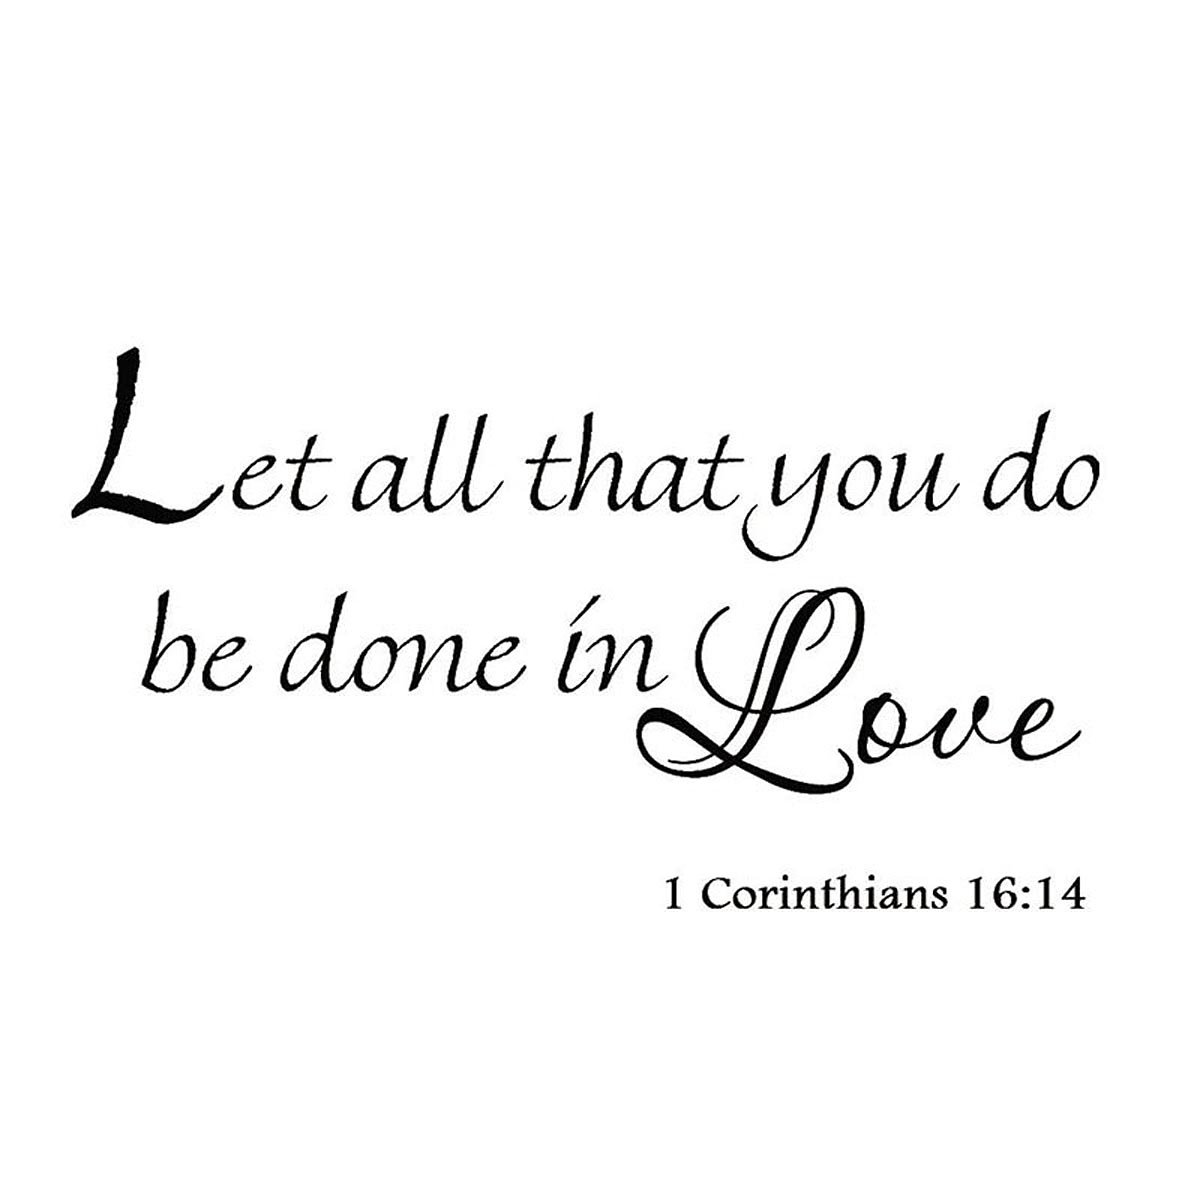 Let All That You Do Be Done in Love 1 Corinthians 16:14 Vinyl Wall Art Religious Faith Home Decal Decor Christian Quote Bible Scripture Wall Decals